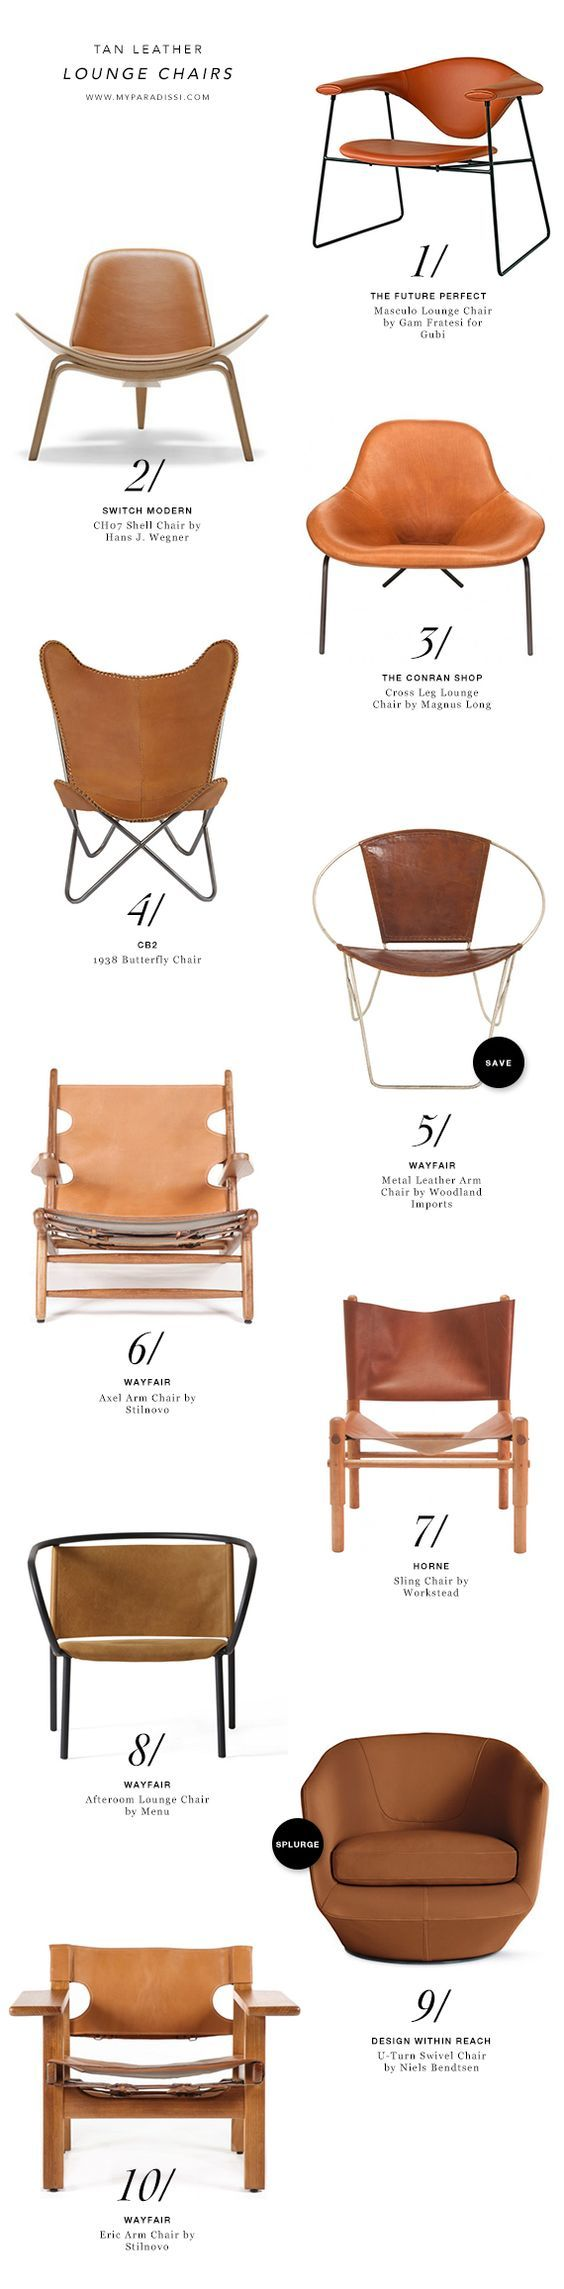 Bauer plantation chair - 10 Best Tan Leather Lounge Chairs